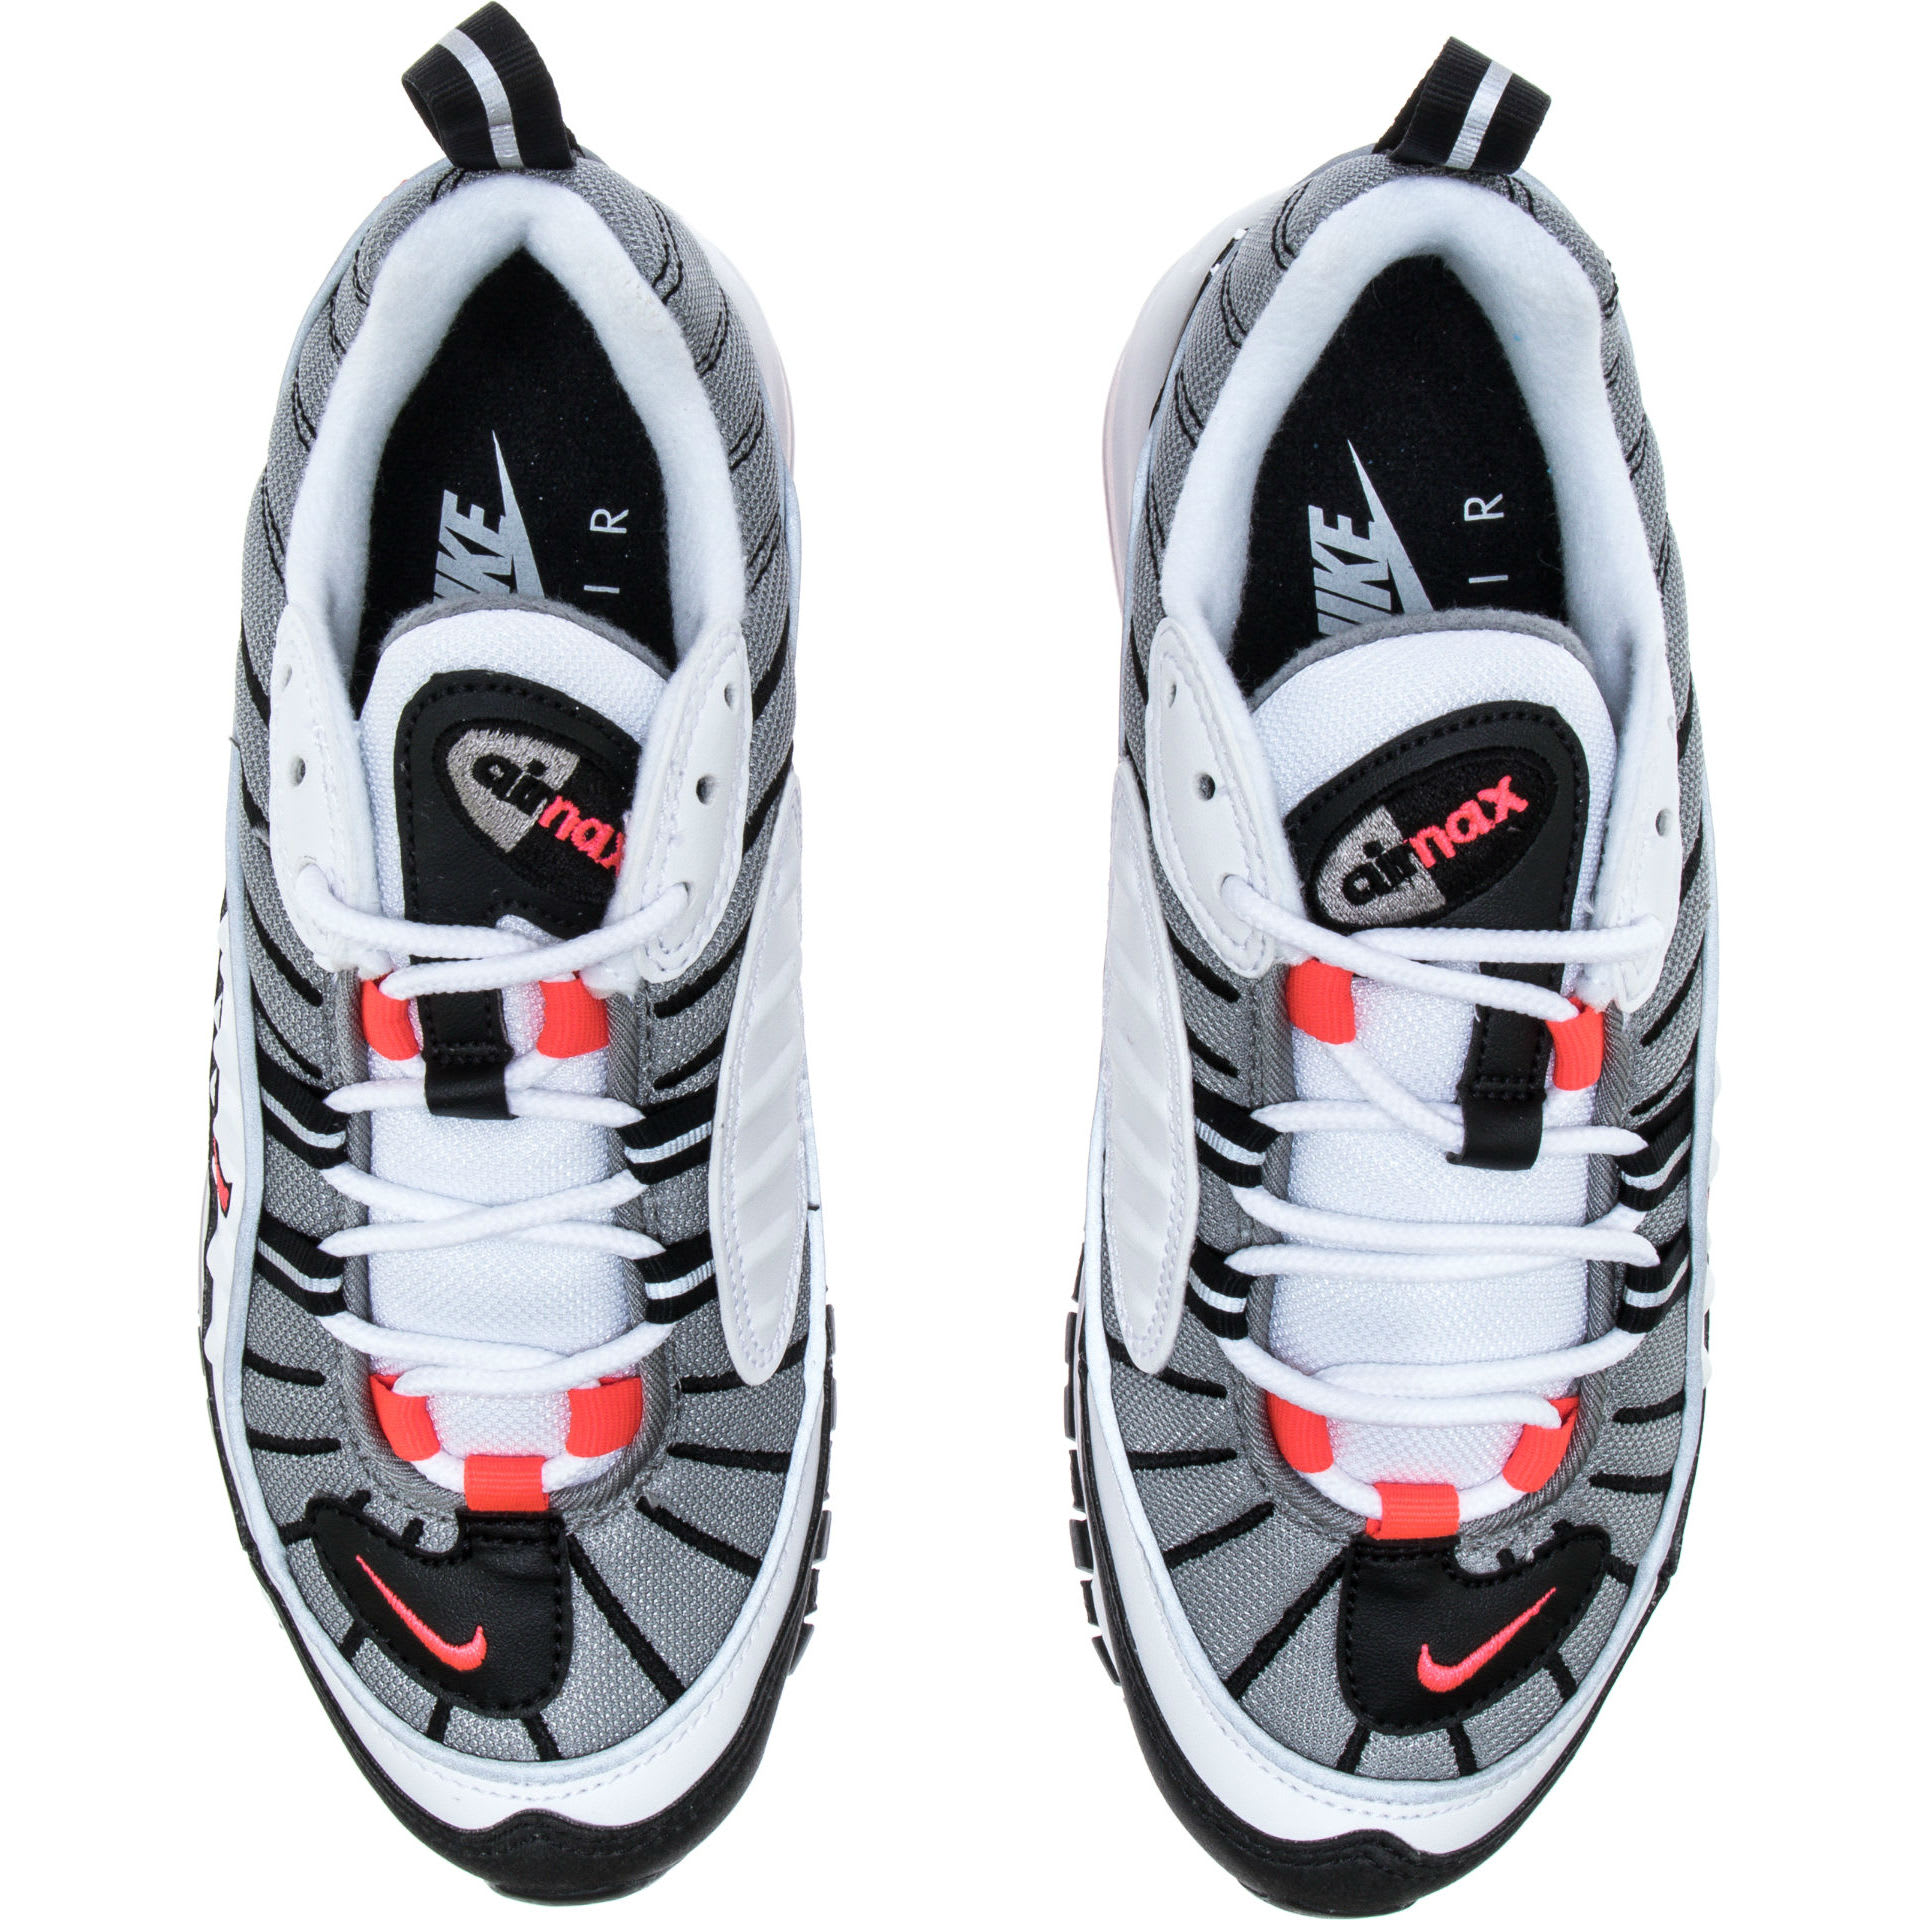 Nike WMNS Air Max 98 Solar Red Release Date AH6799-104 Top